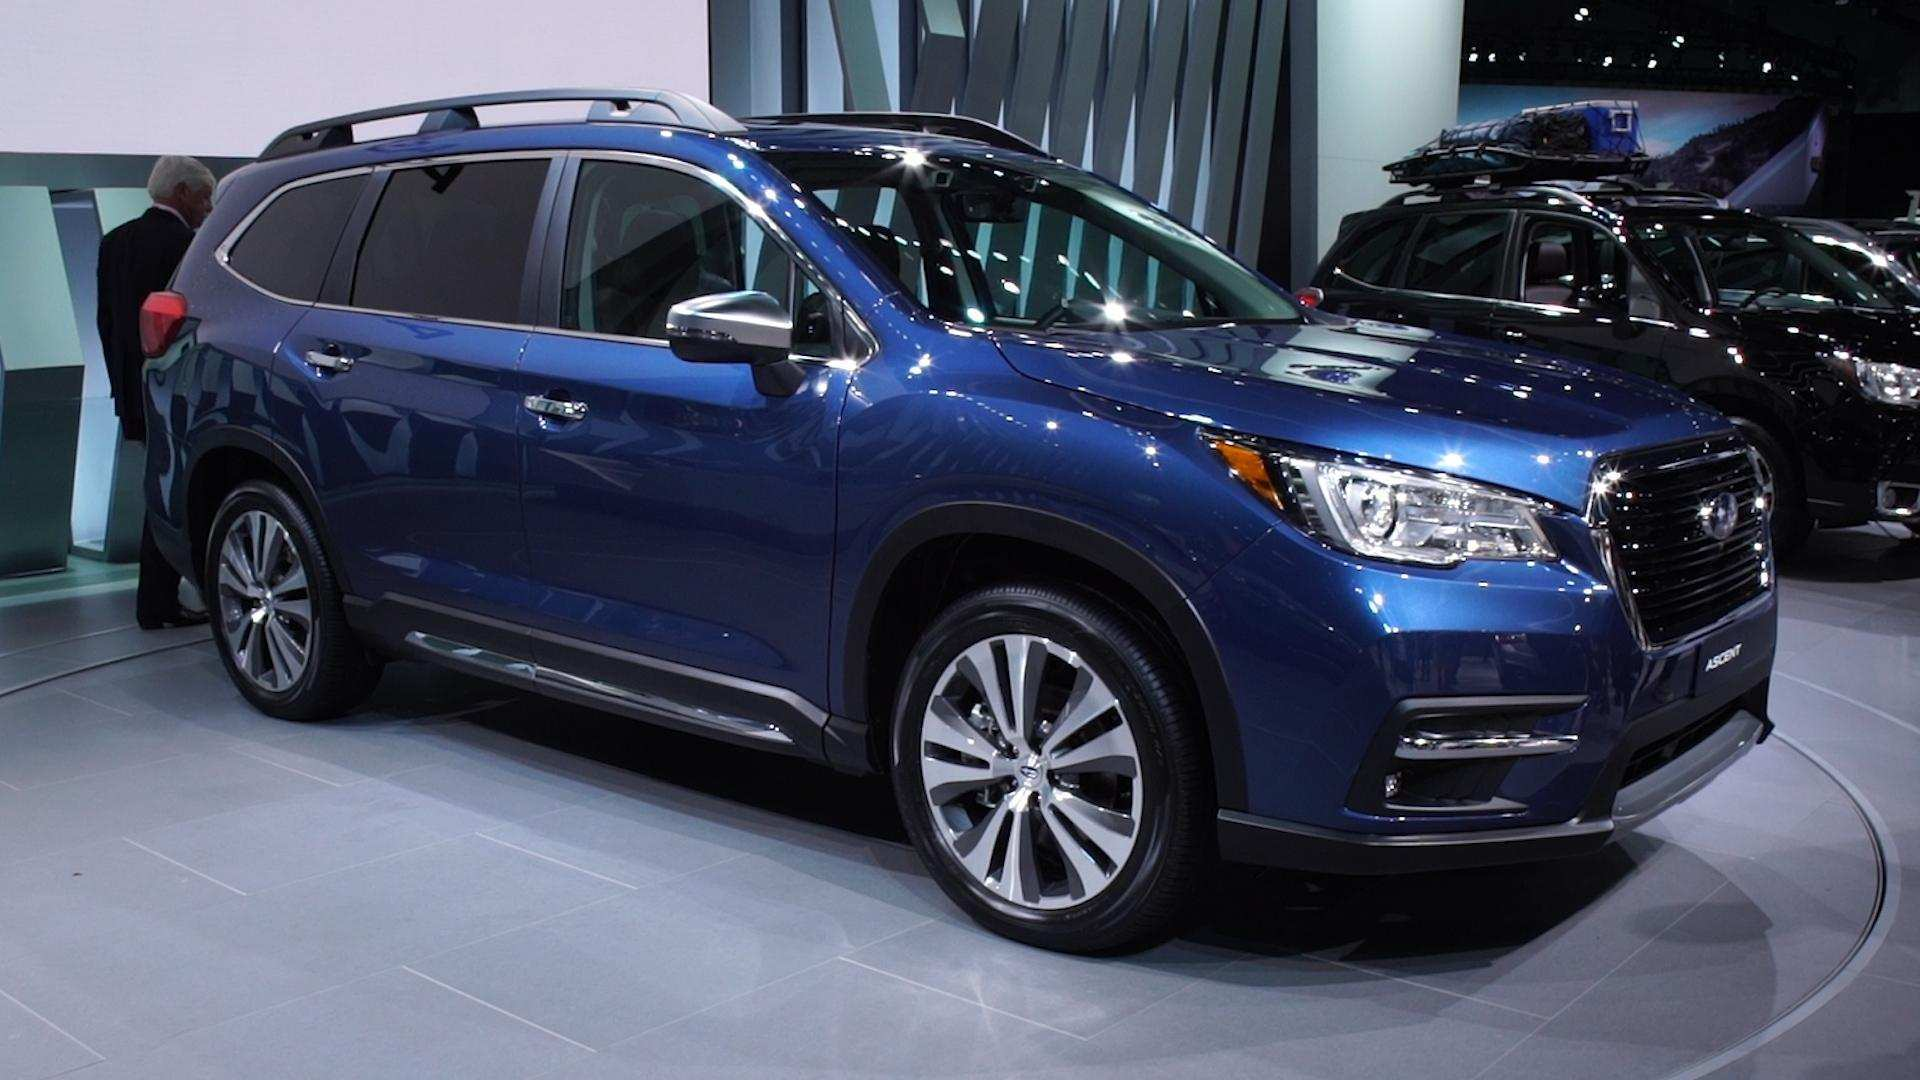 67 All New 2019 Subaru Ascent Towing Capacity Pricing for 2019 Subaru Ascent Towing Capacity